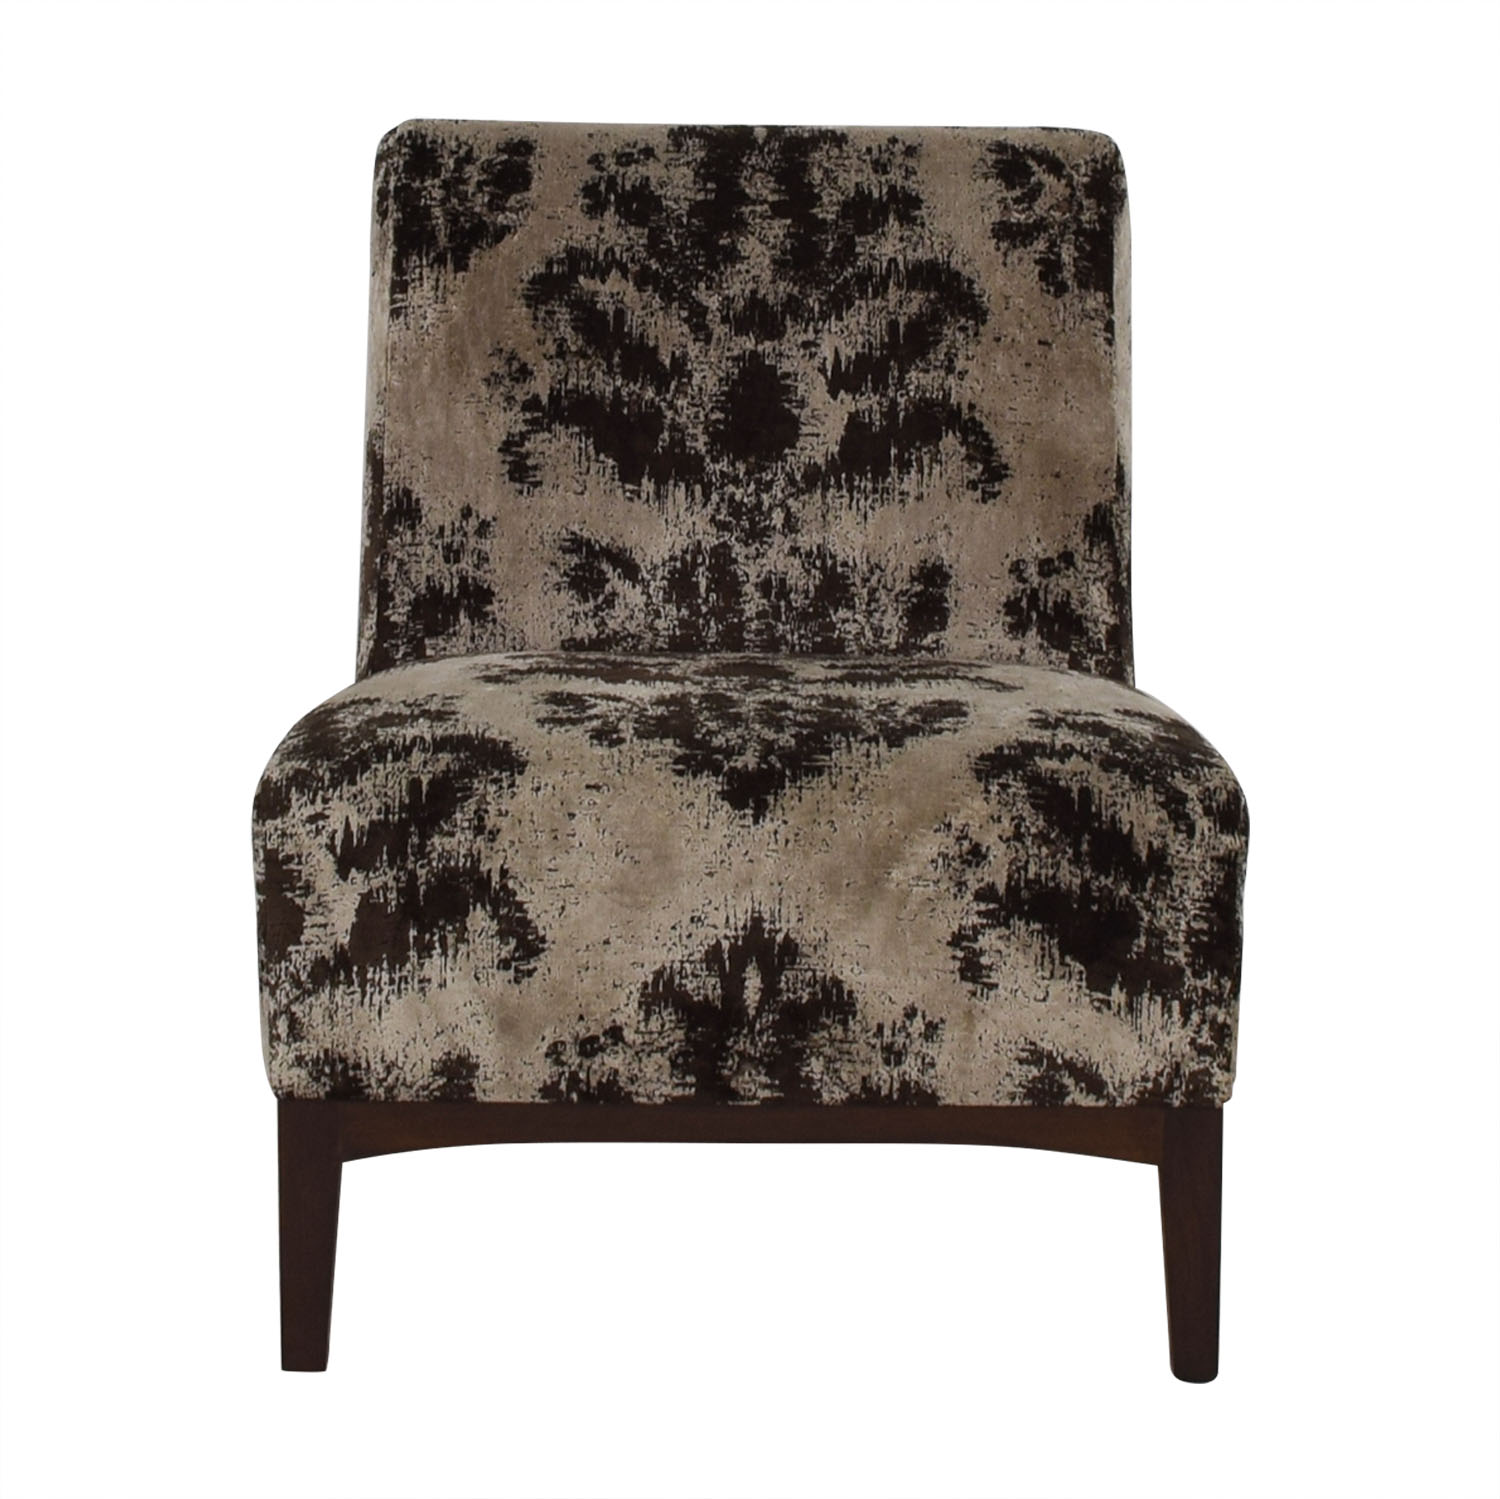 Furniture masters furniture masters brown and grey accent chair second hand